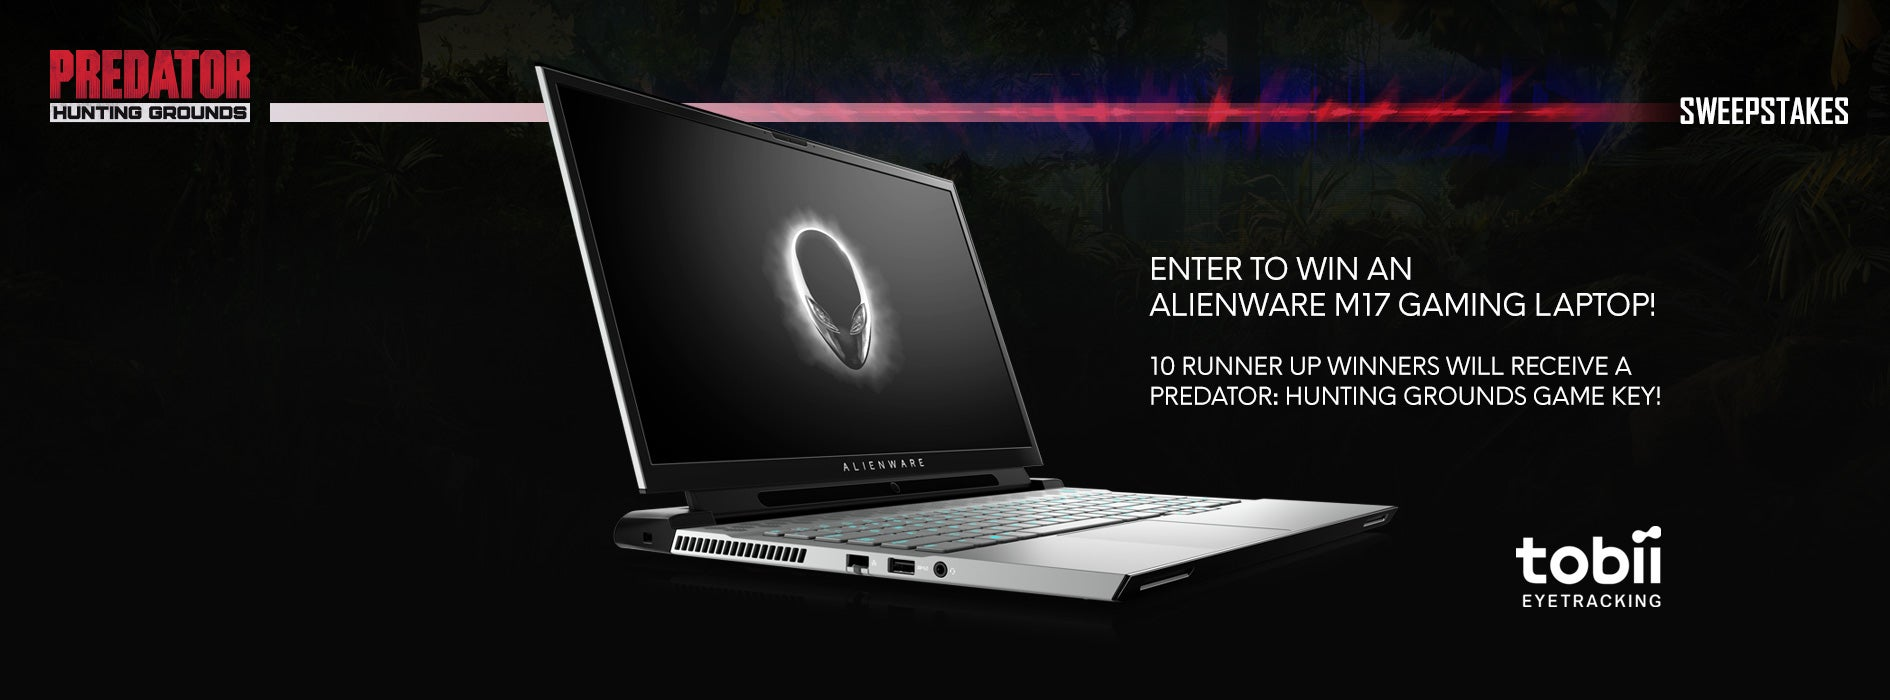 Alienware Arena - M17 Gaming Laptop April 2020 Sweepstakes</a><br> by <a href='/profile/Bling-King/'>Bling King</a>